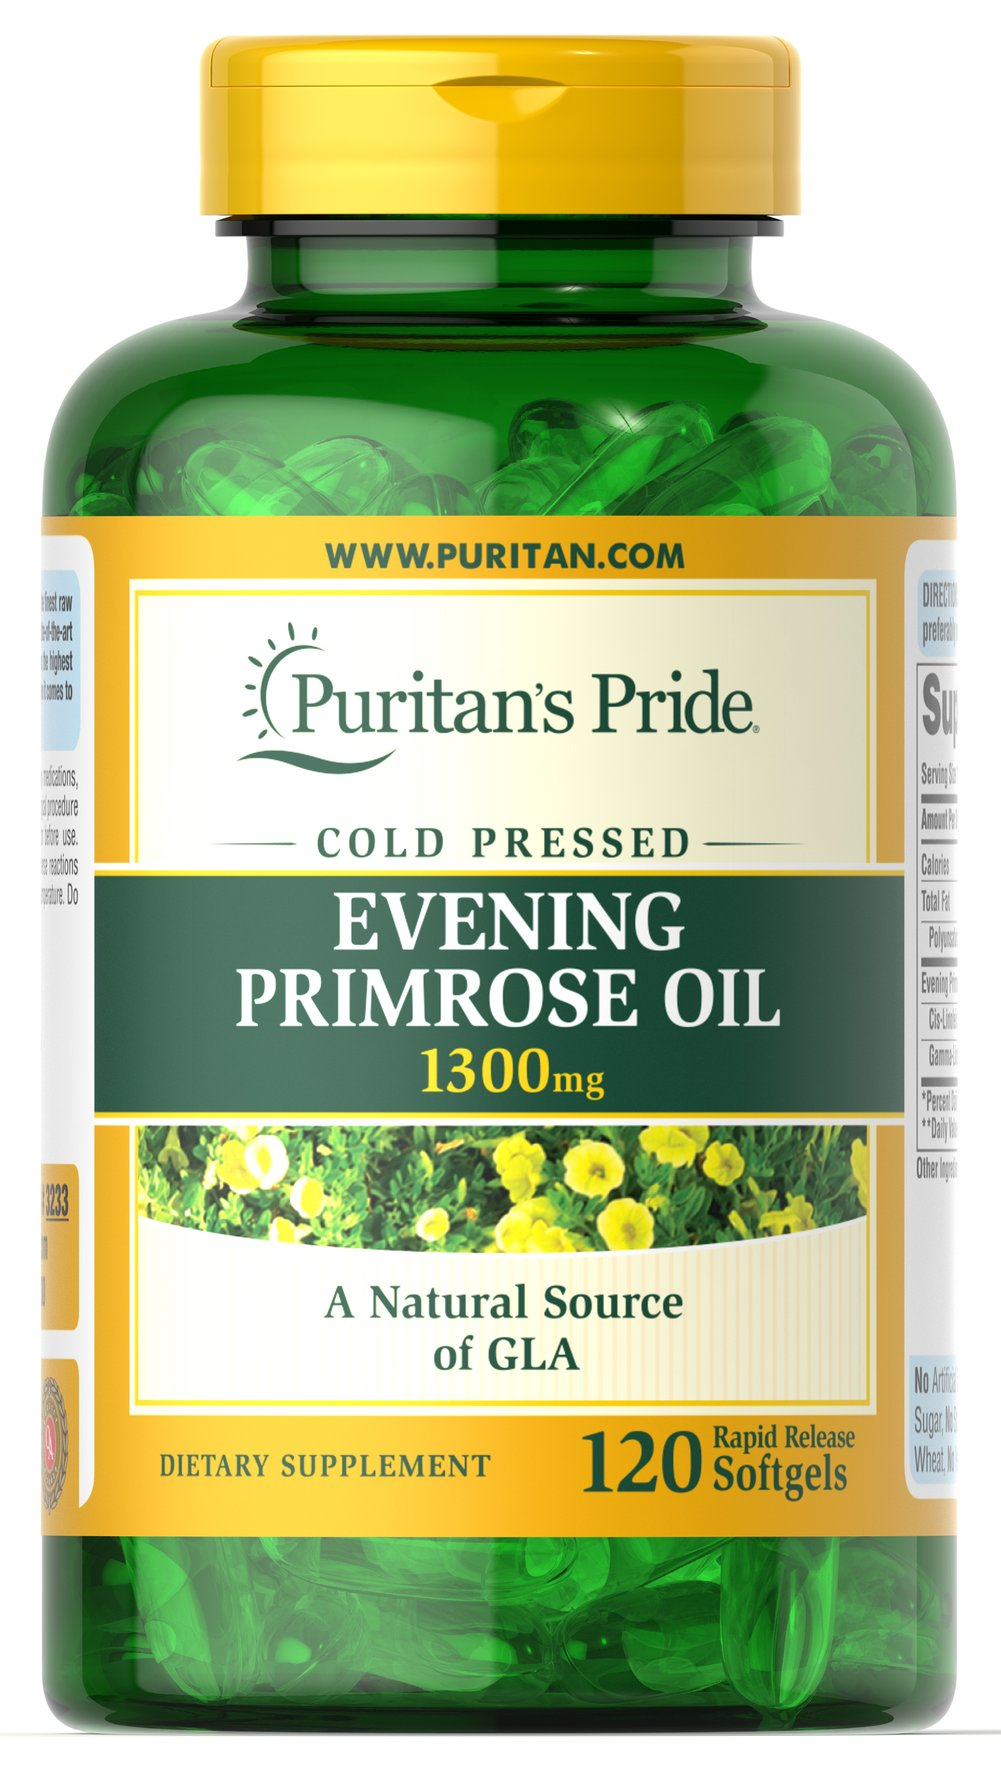 Evening Primrose Oil 1300 mg with GLA <p>For centuries, EPO has been used to provide nutritional support for women with premenstrual syndrome (PMS); it may also play a role in promoting smooth, healthy-looking skin.**</p><p>These easy-to-swallow softgels are a natural source of GLA (Gamma Linolenic Acid). Our EPO contains one of the most biologically active forms of this Omega-6 fatty acid available today.</p>  120 Softgels 1300 mg $30.99